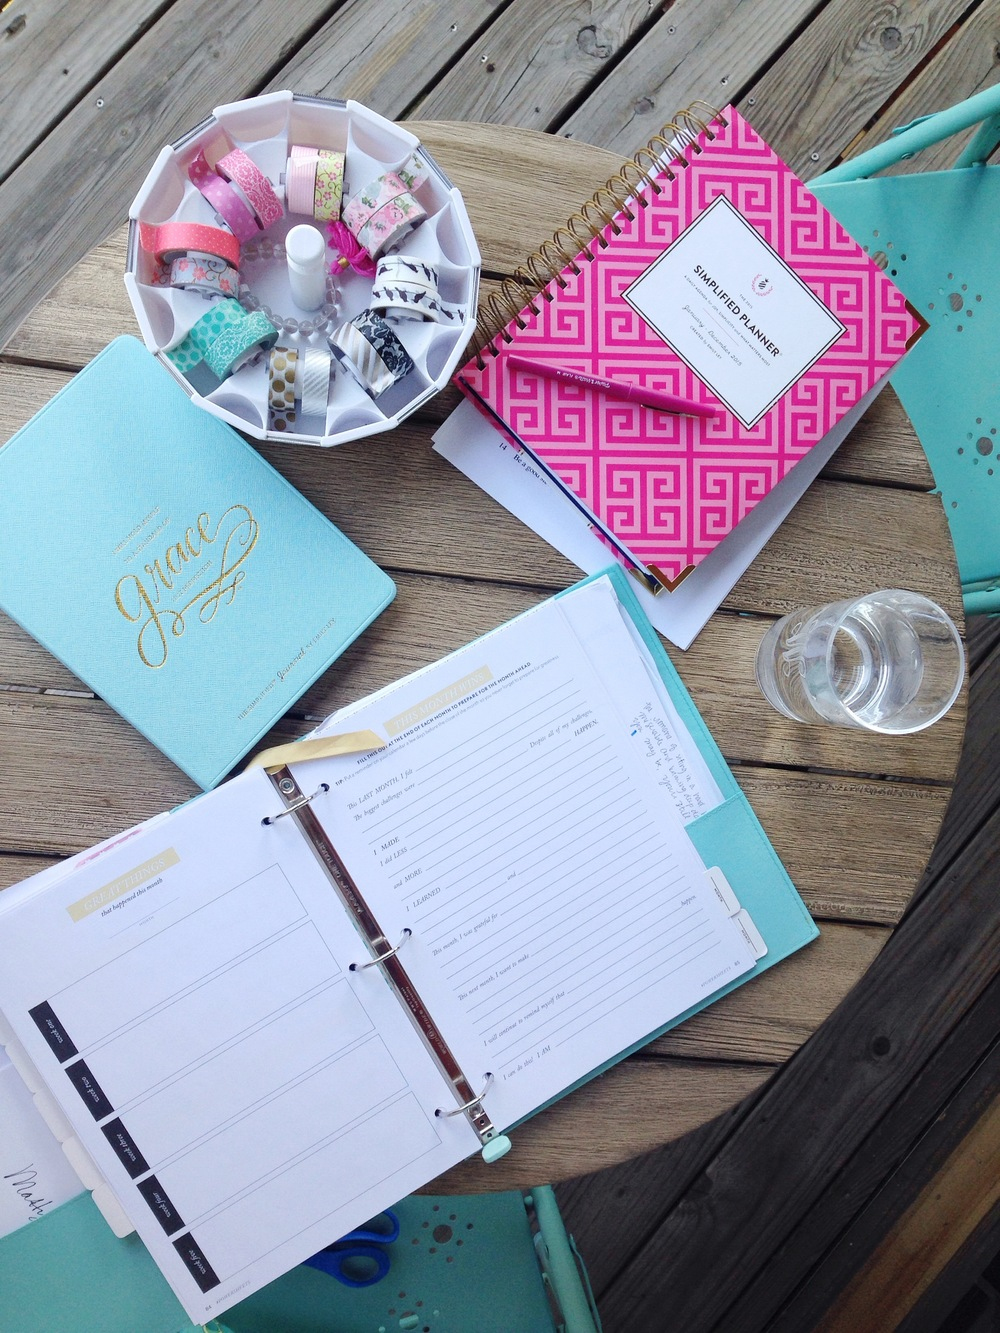 I am so grateful for these tools that have helped me live with purpose and intention. If you're looking for tools to help you do the same, I highly recommend PowerSheets and the Simplified Planner. And just like anything, they work when you do!